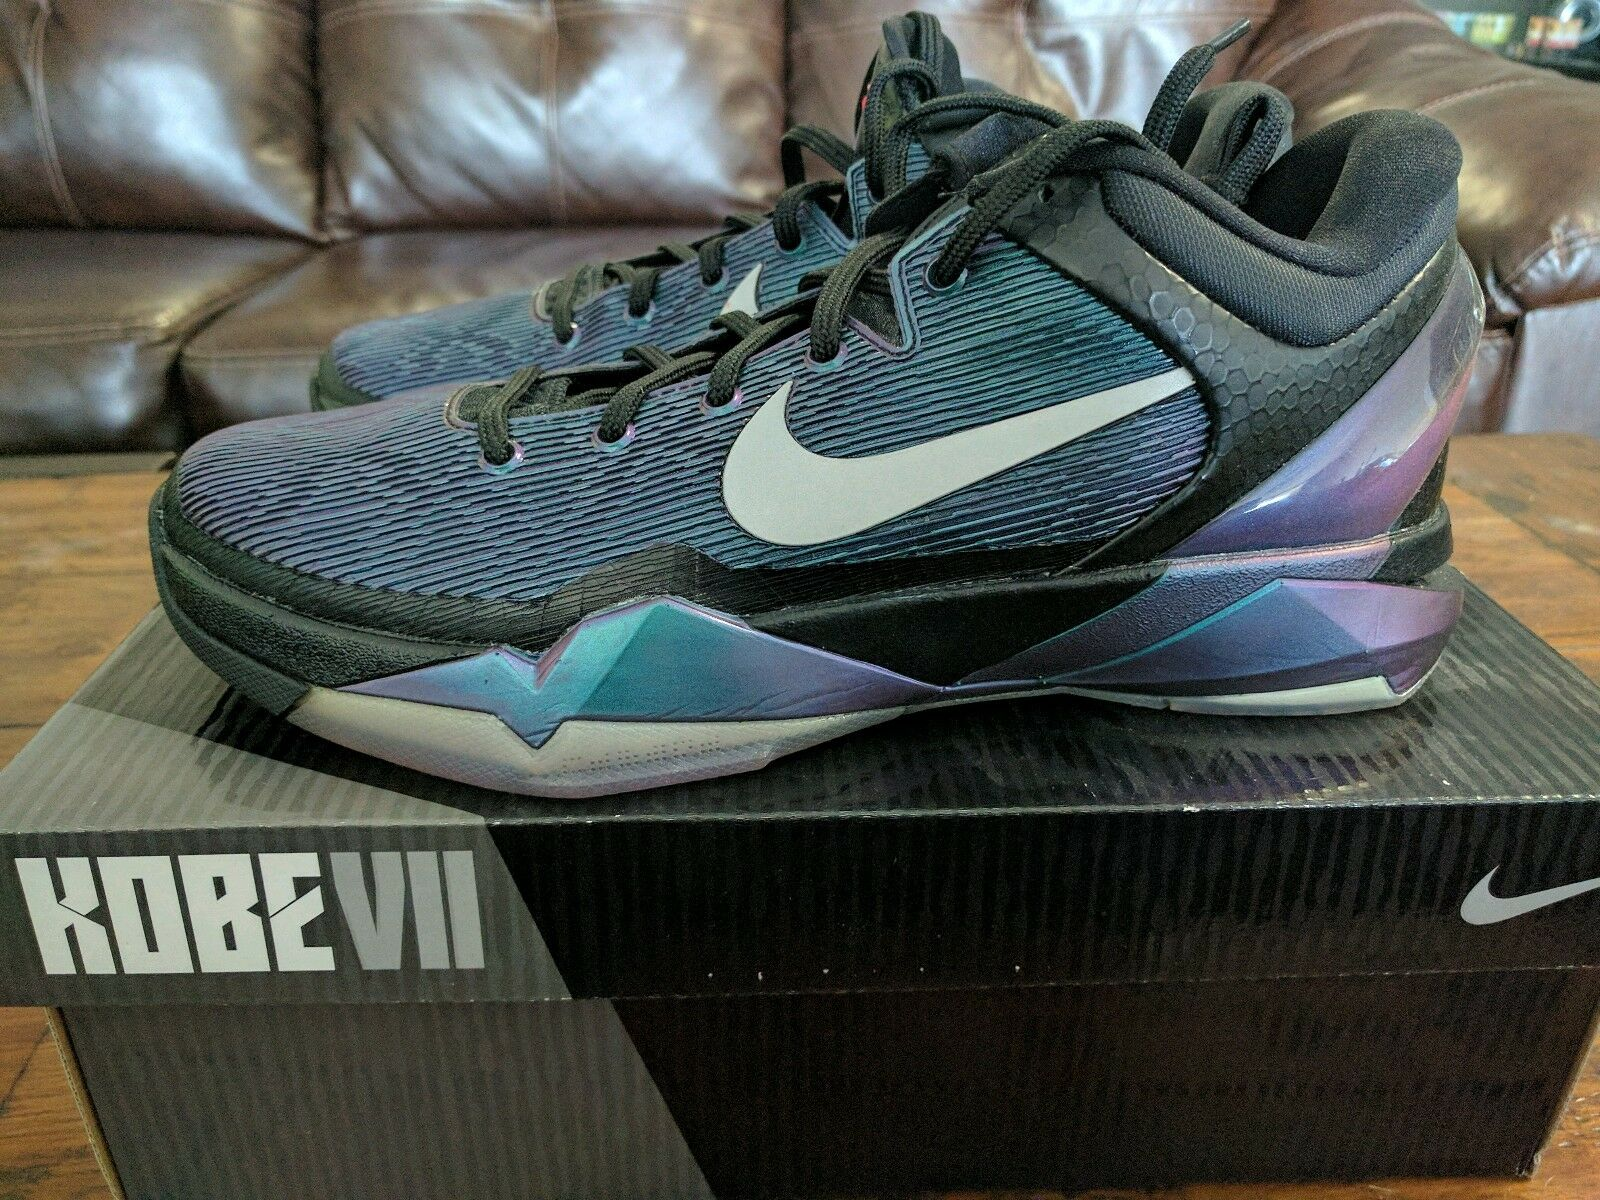 Nike Zoom Kobe 7 VII Invisibility Cloak 488371 005 black purple turquoise 9.5 DS